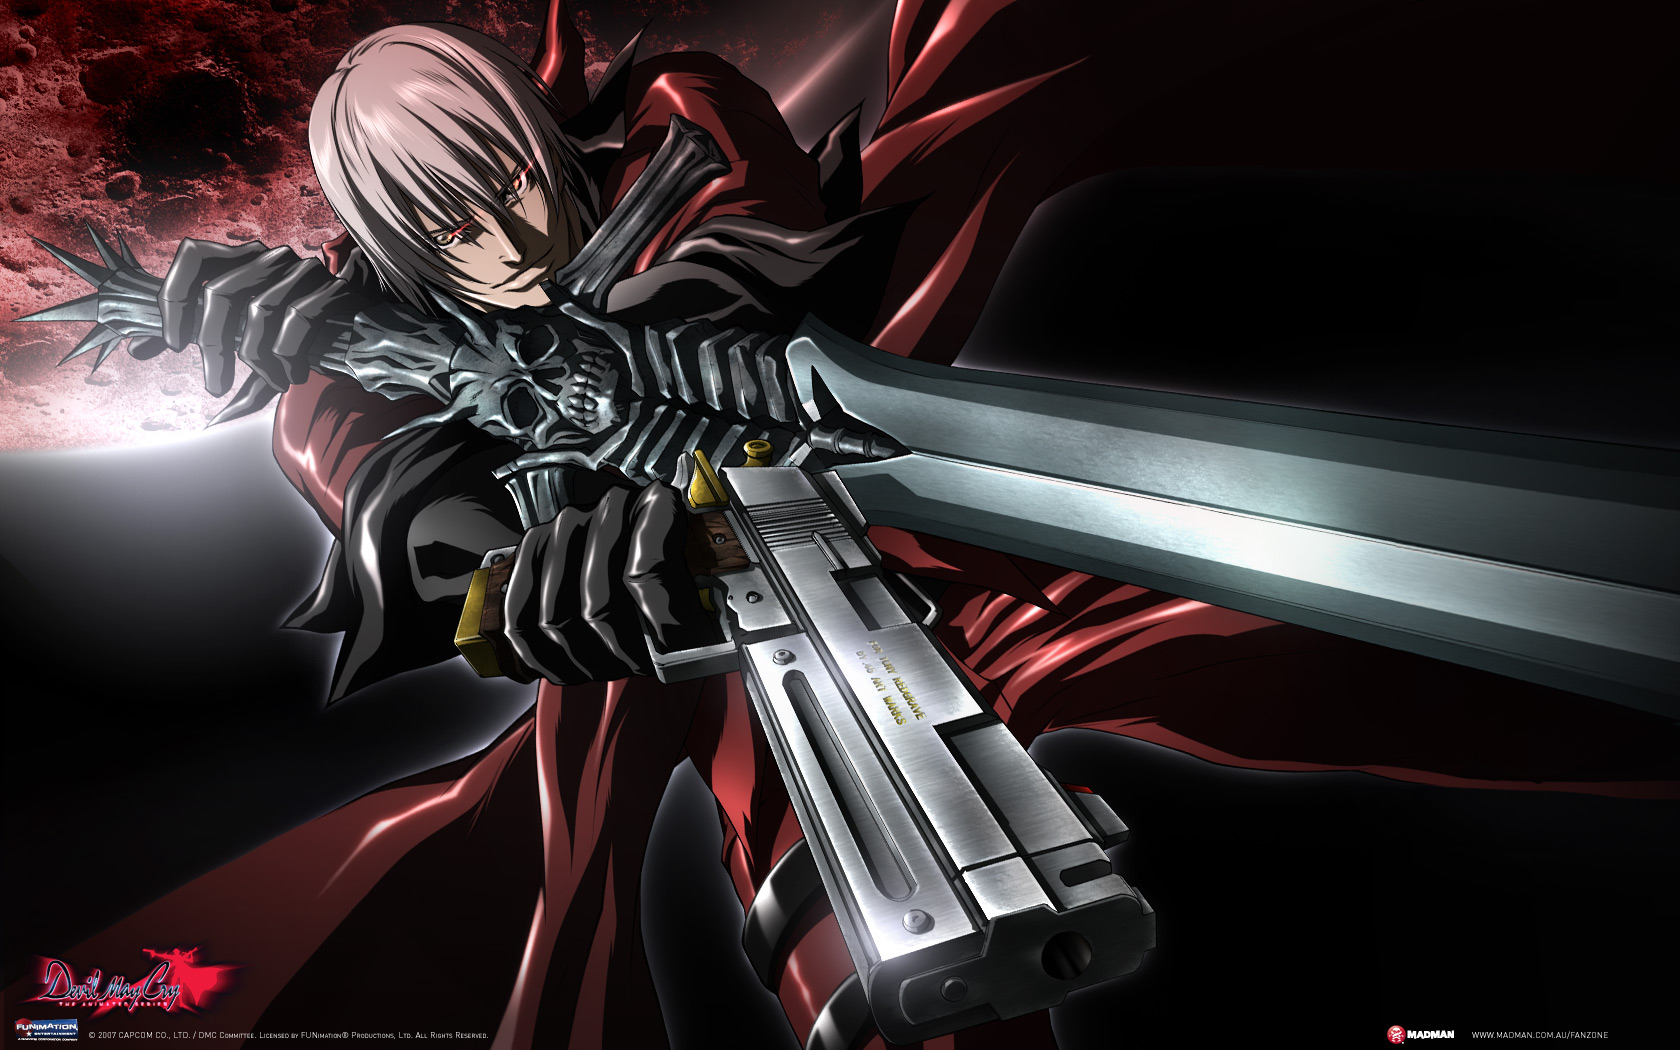 Devil may cry wallpaper Group (77+)